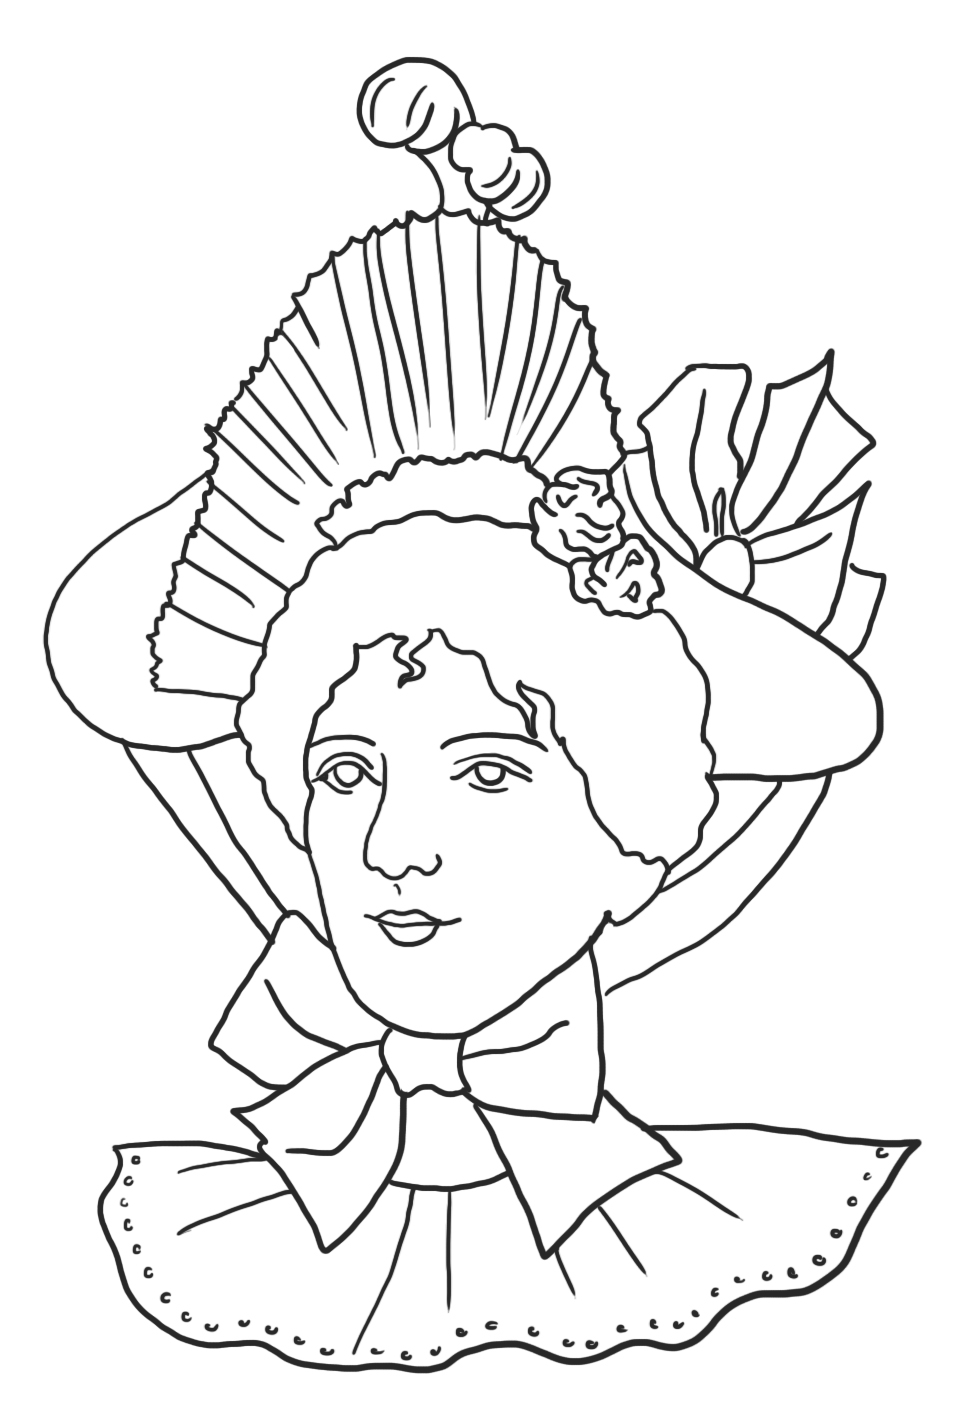 victorian colouring sheets victorian printable coloring pictures victorian colouring sheets 1 2